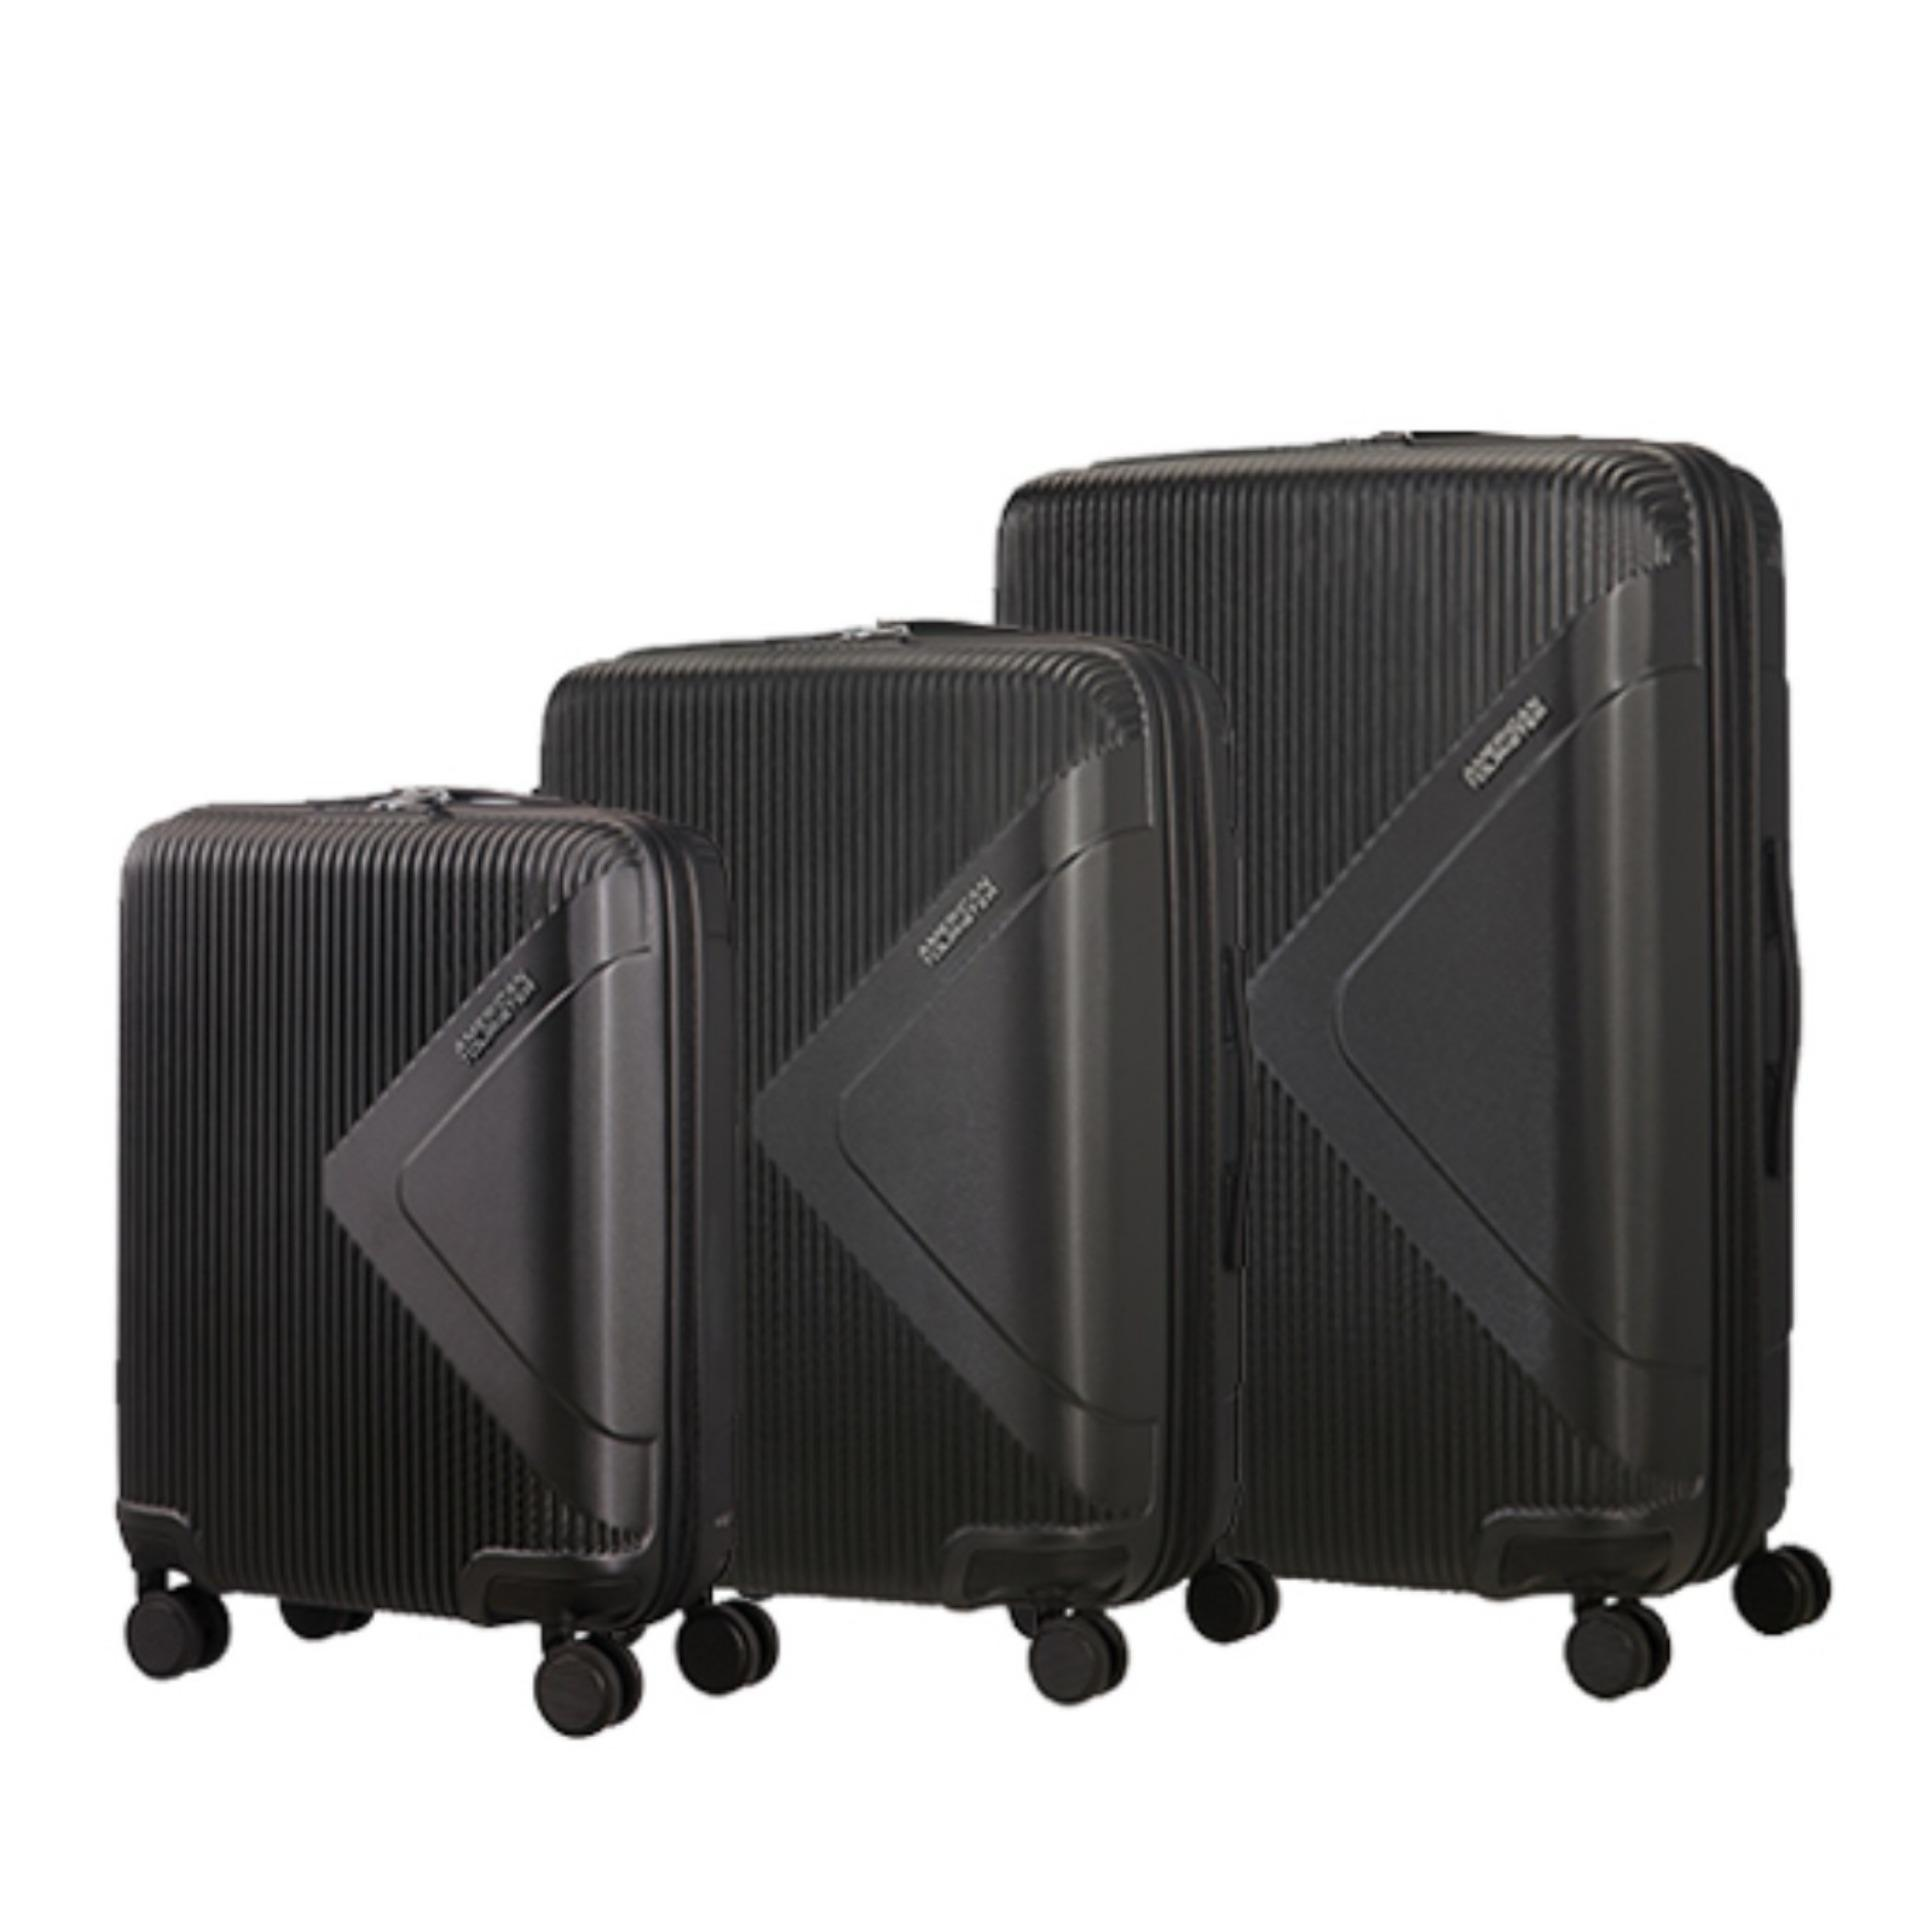 American Tourister. Suitcases